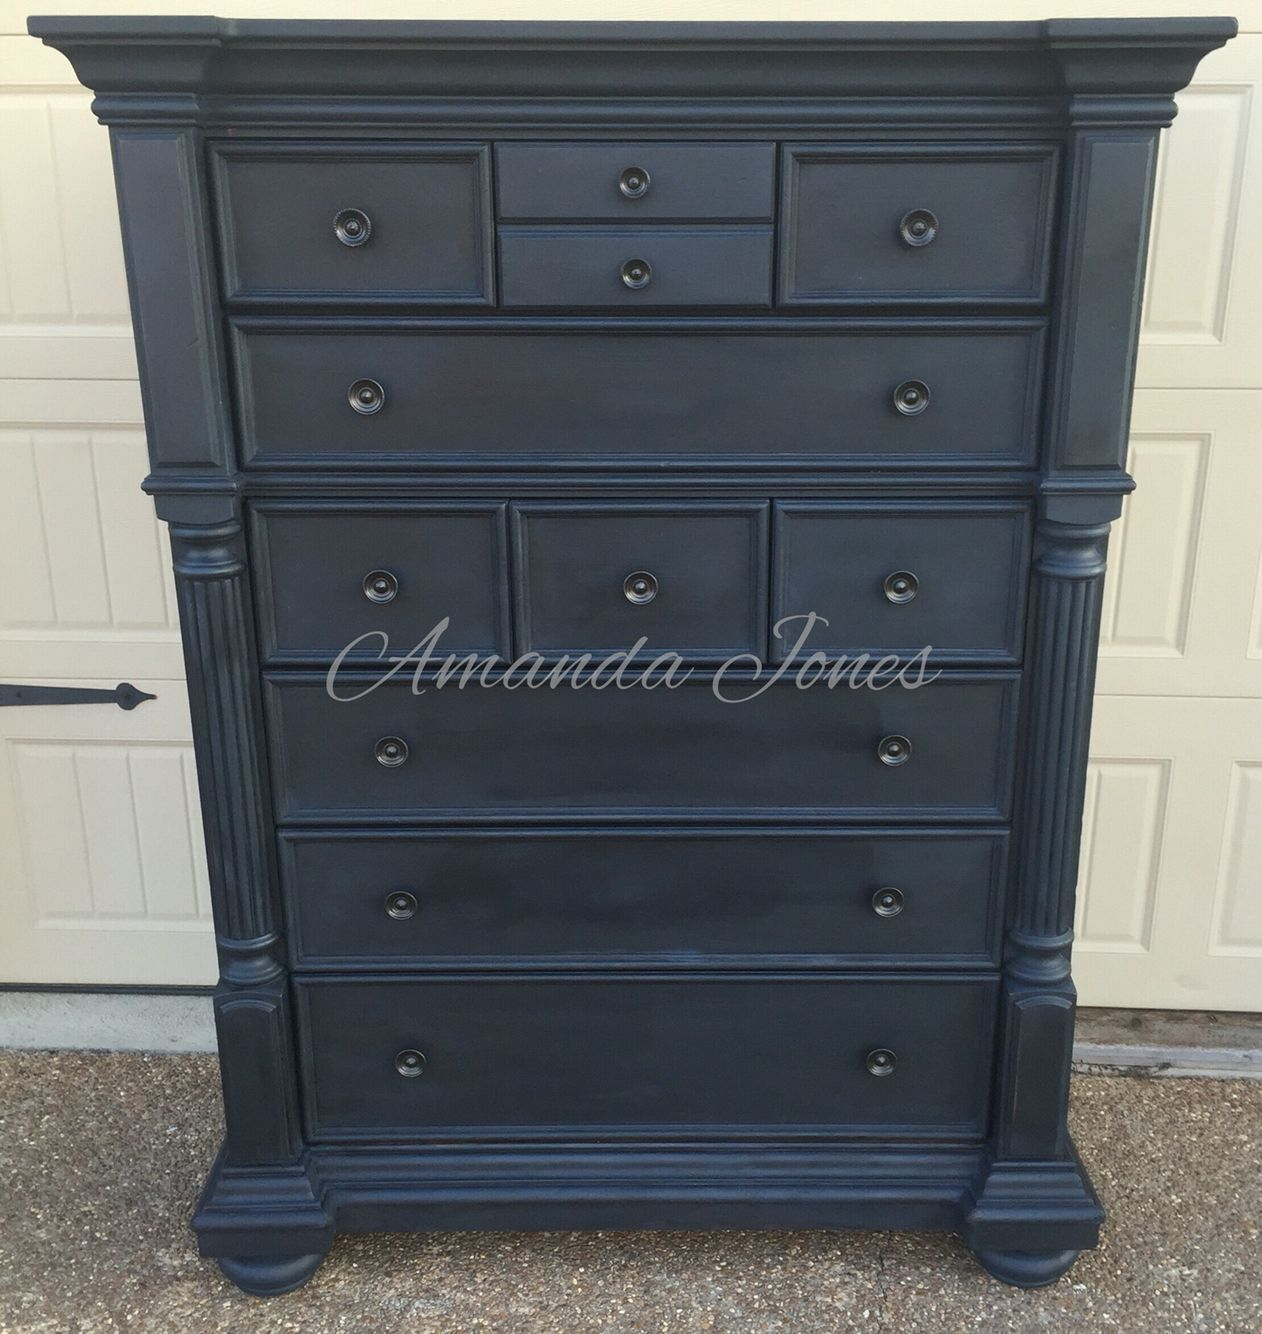 Attractive 50/50 Mix Of Napoleonic Blue And Graphite Chalk Paint™ With Black Wax